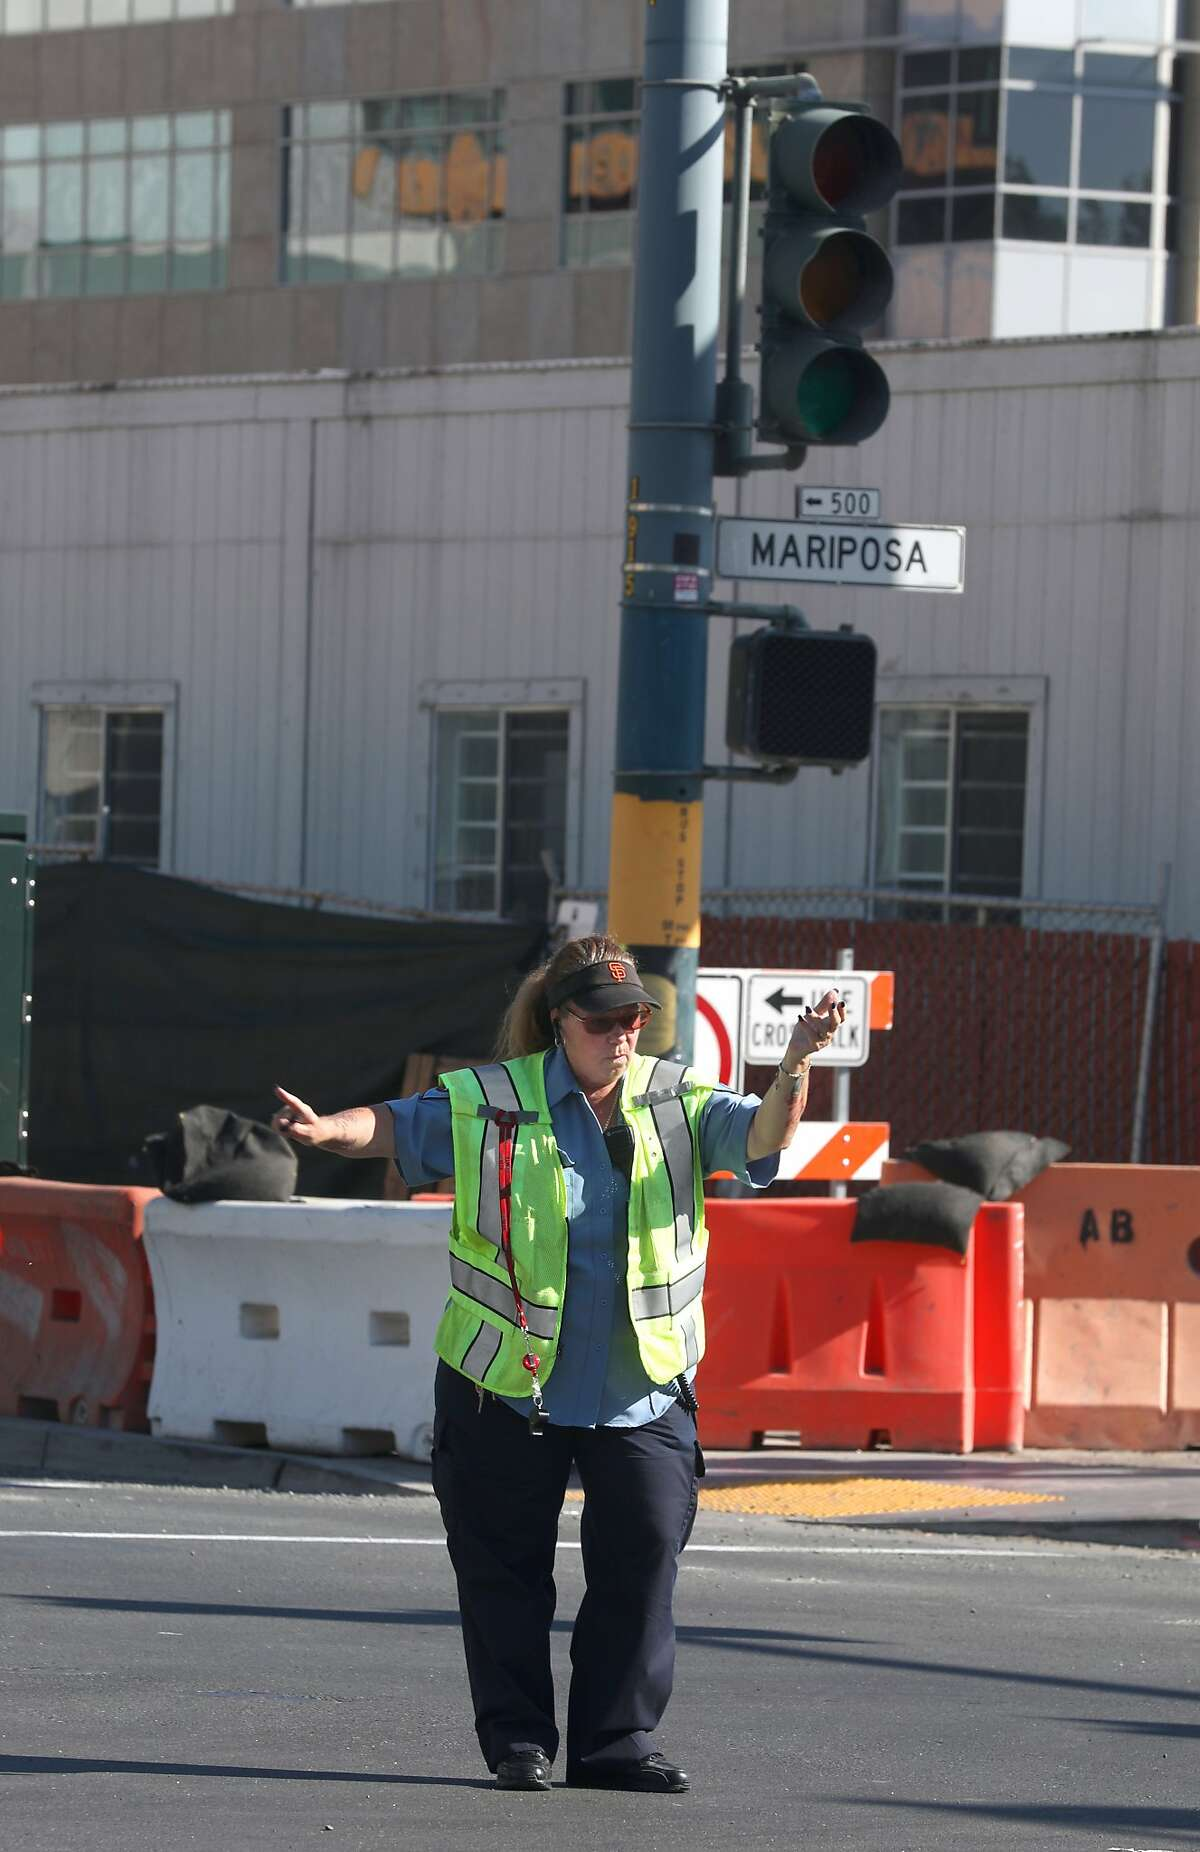 Traffic lights on 3rd at Mariposa streets are part of the outtage this morning which left 22,000 customers without power on Friday, Sept. 20, 2019 in San Francisco, Calif.